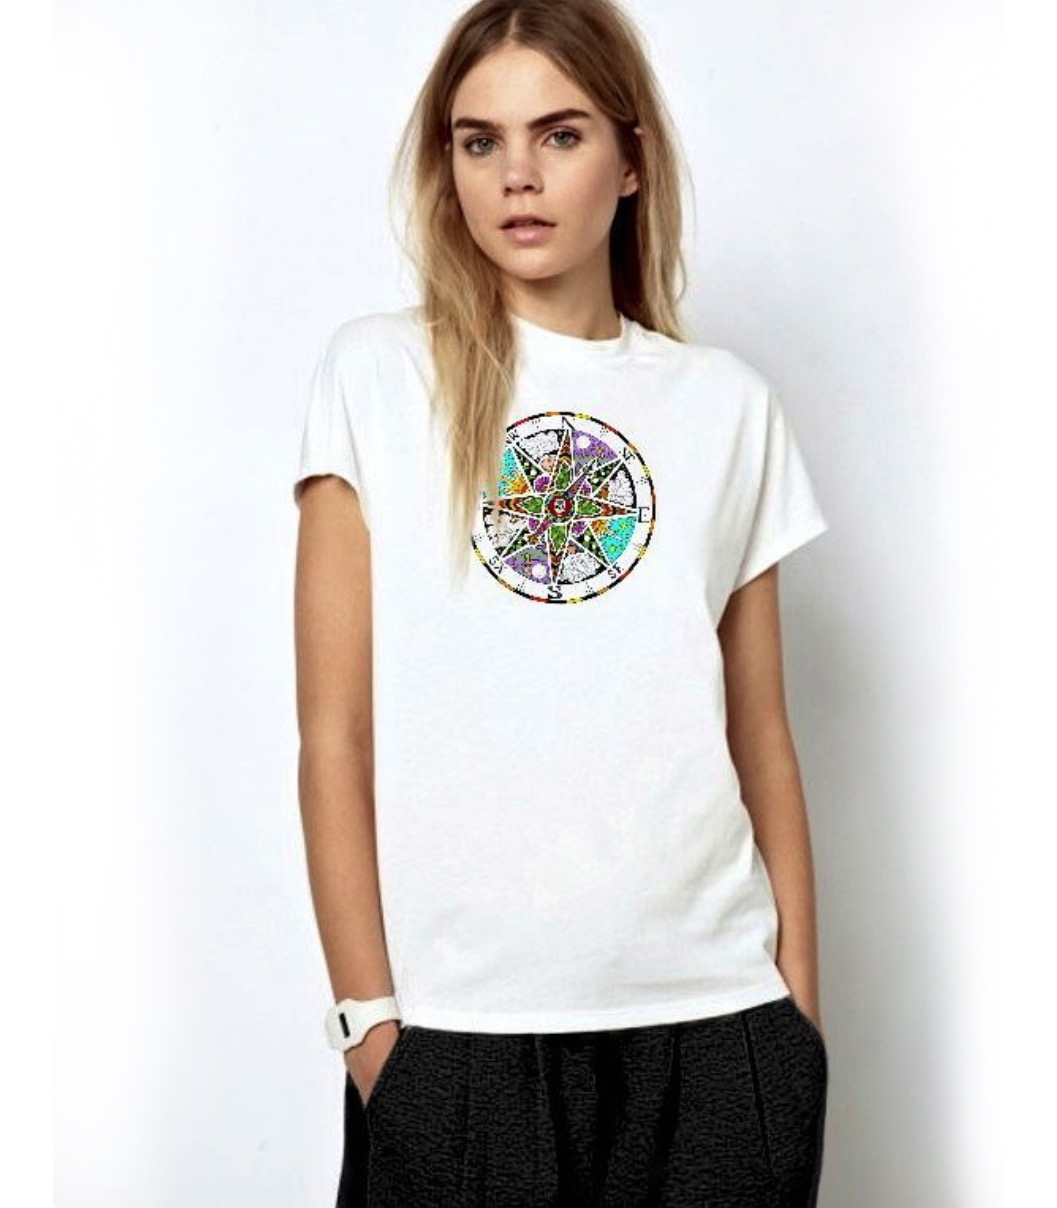 15-Off-White-Women-s-Black-Embroidered-T-Shirt-1 copy 41.jpg